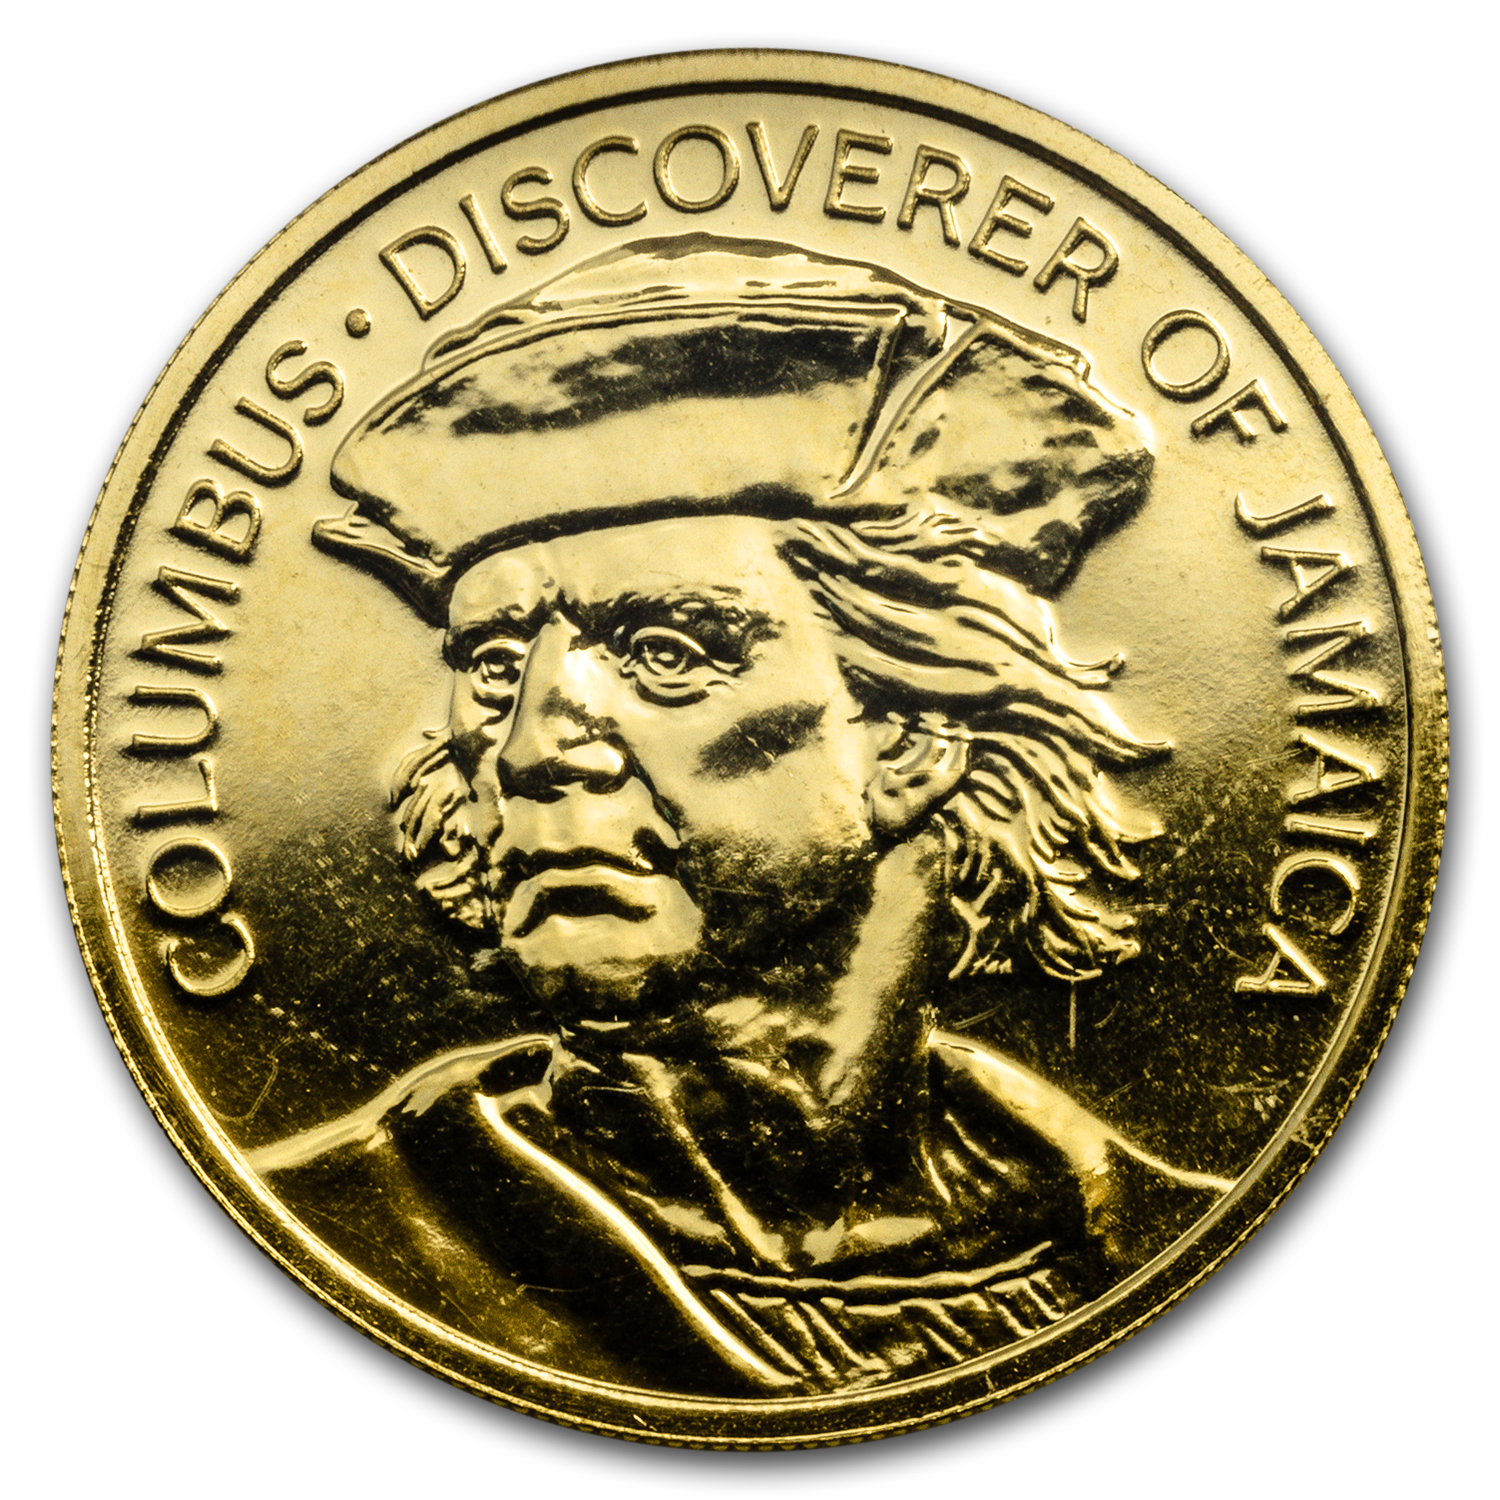 1975 Jamaica Proof Gold 100 Dollars Columbus